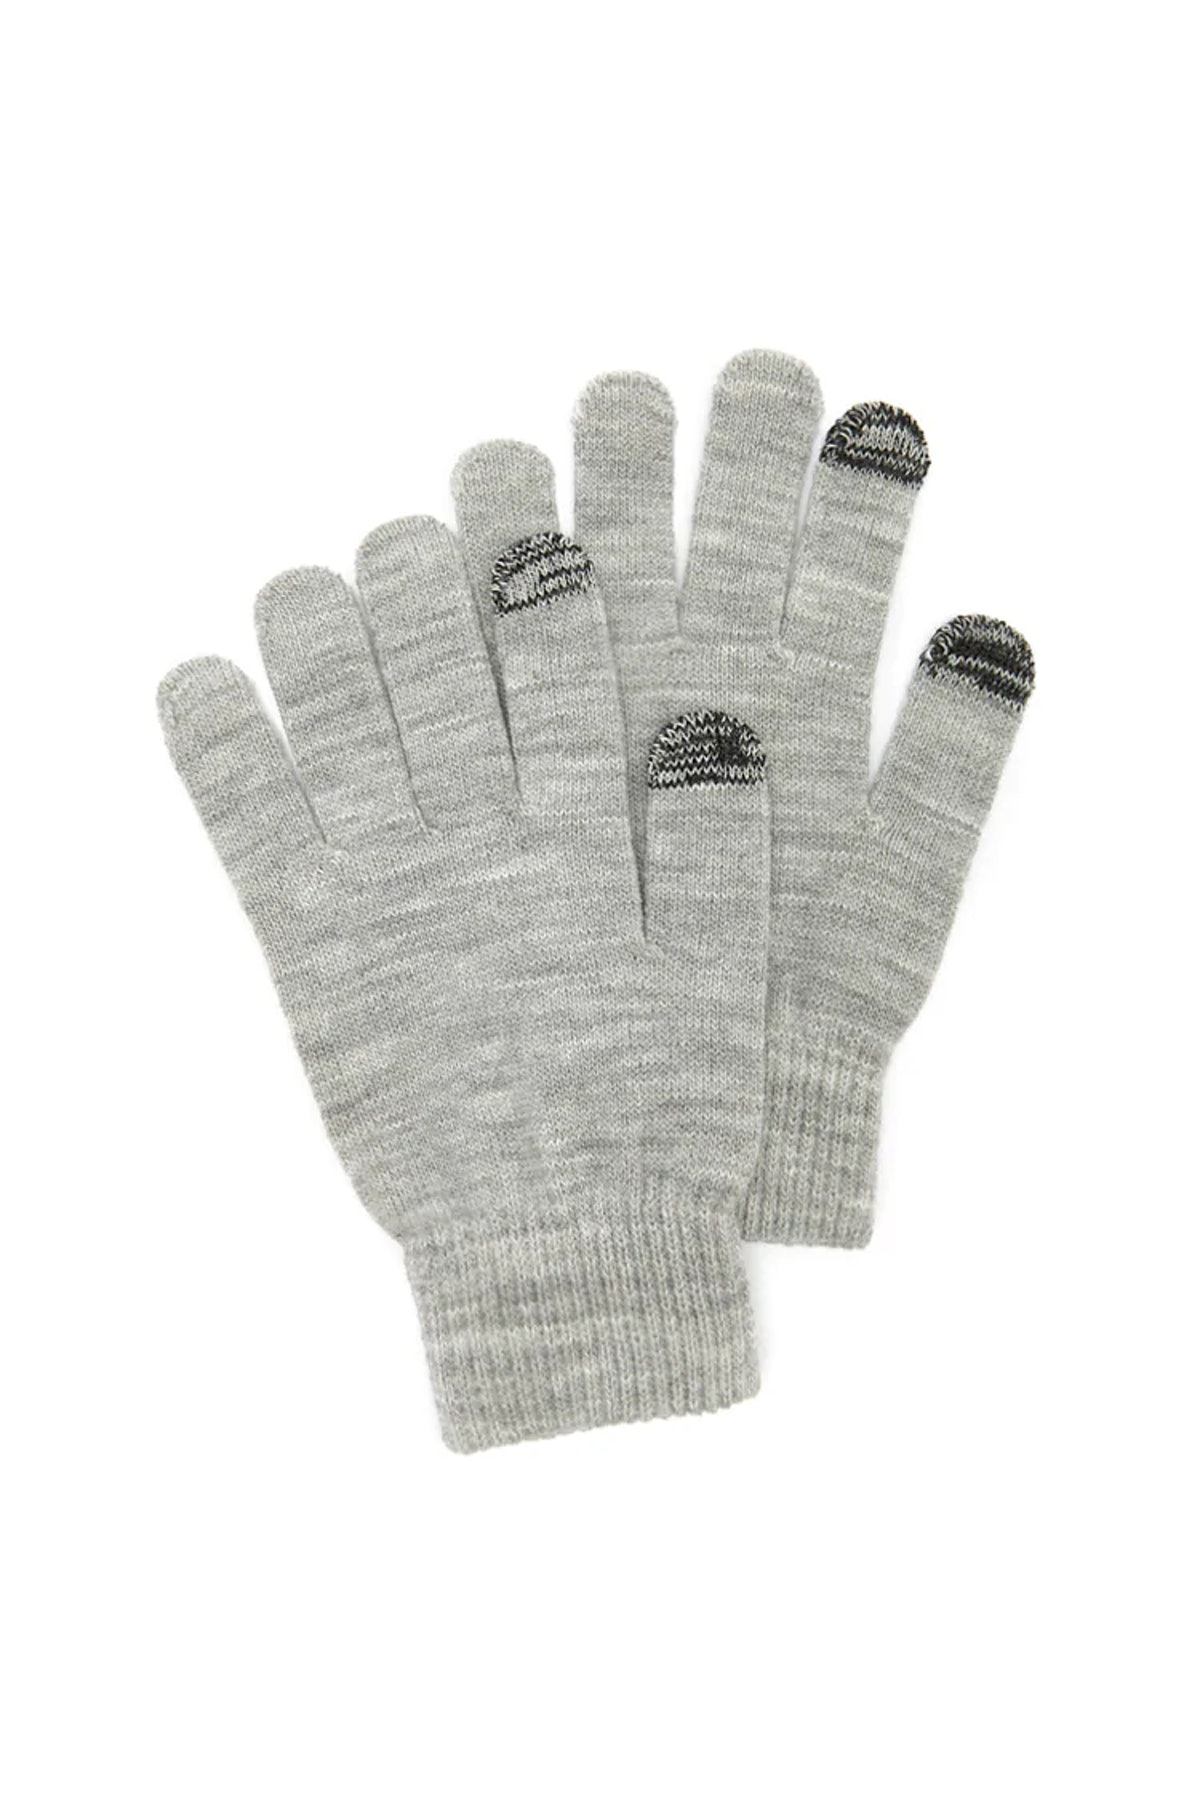 Forever 21 Tech-Friendly Heathered Gloves